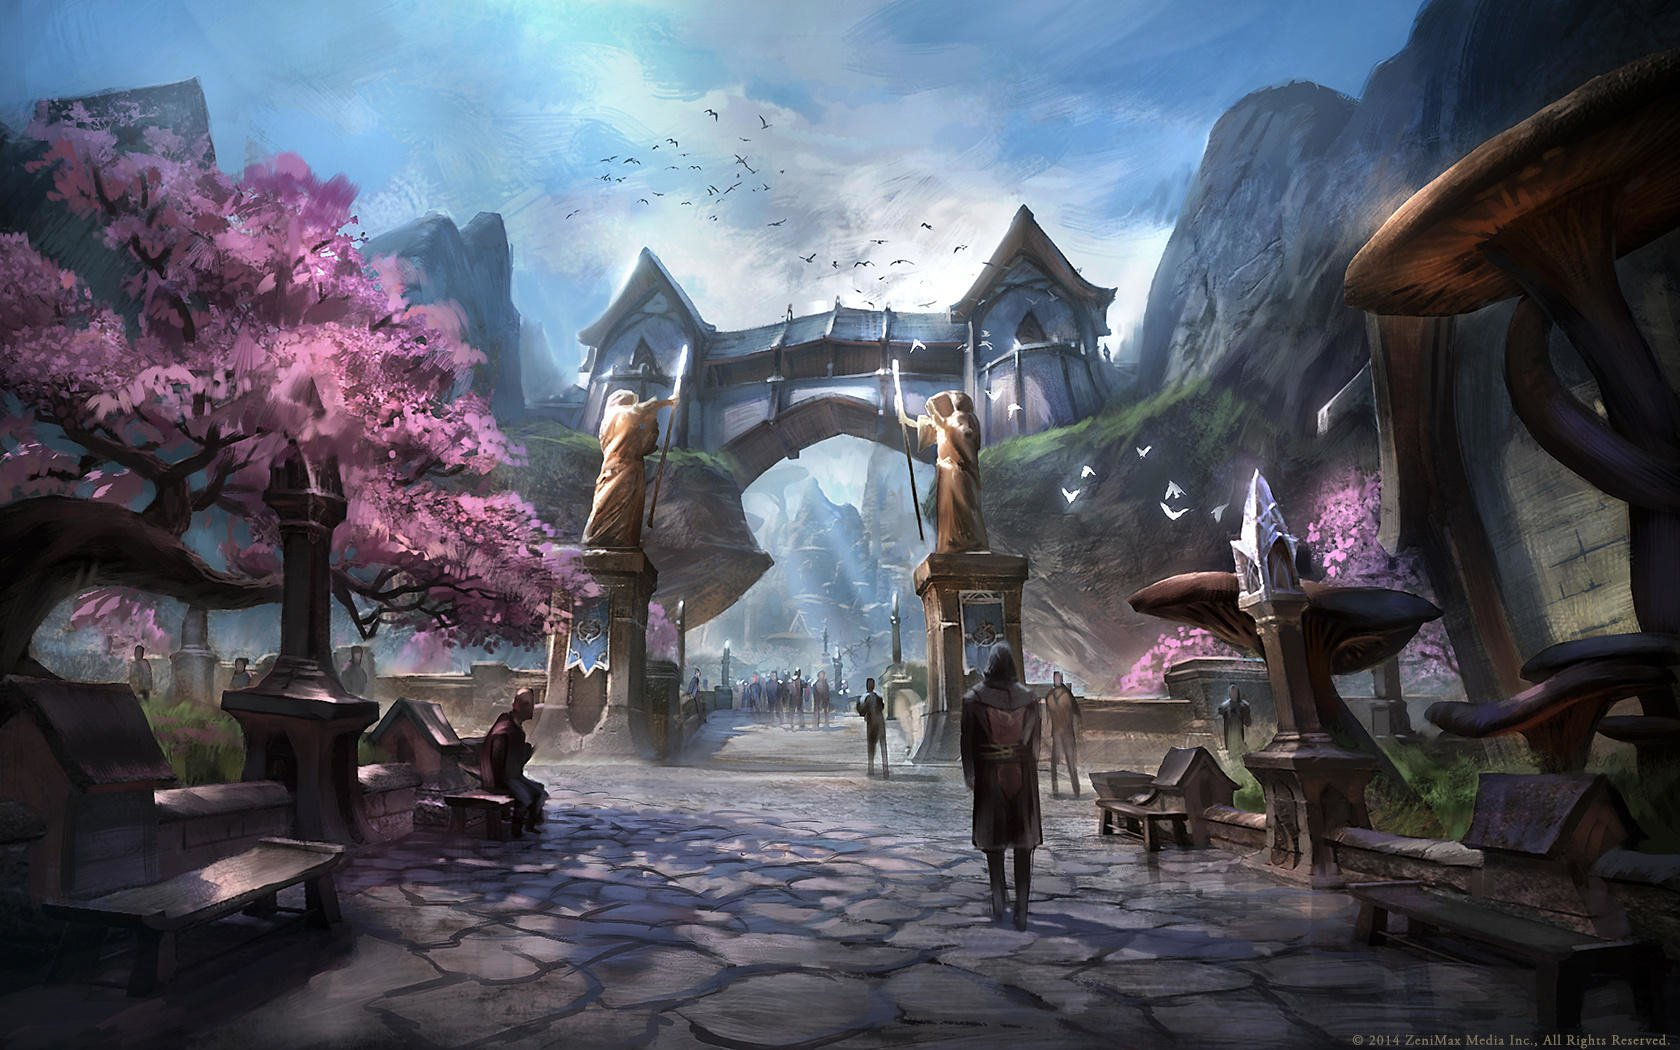 The Elder Scrolls Wallpaper: The Elder Scrolls Online Wallpaper And Background Image